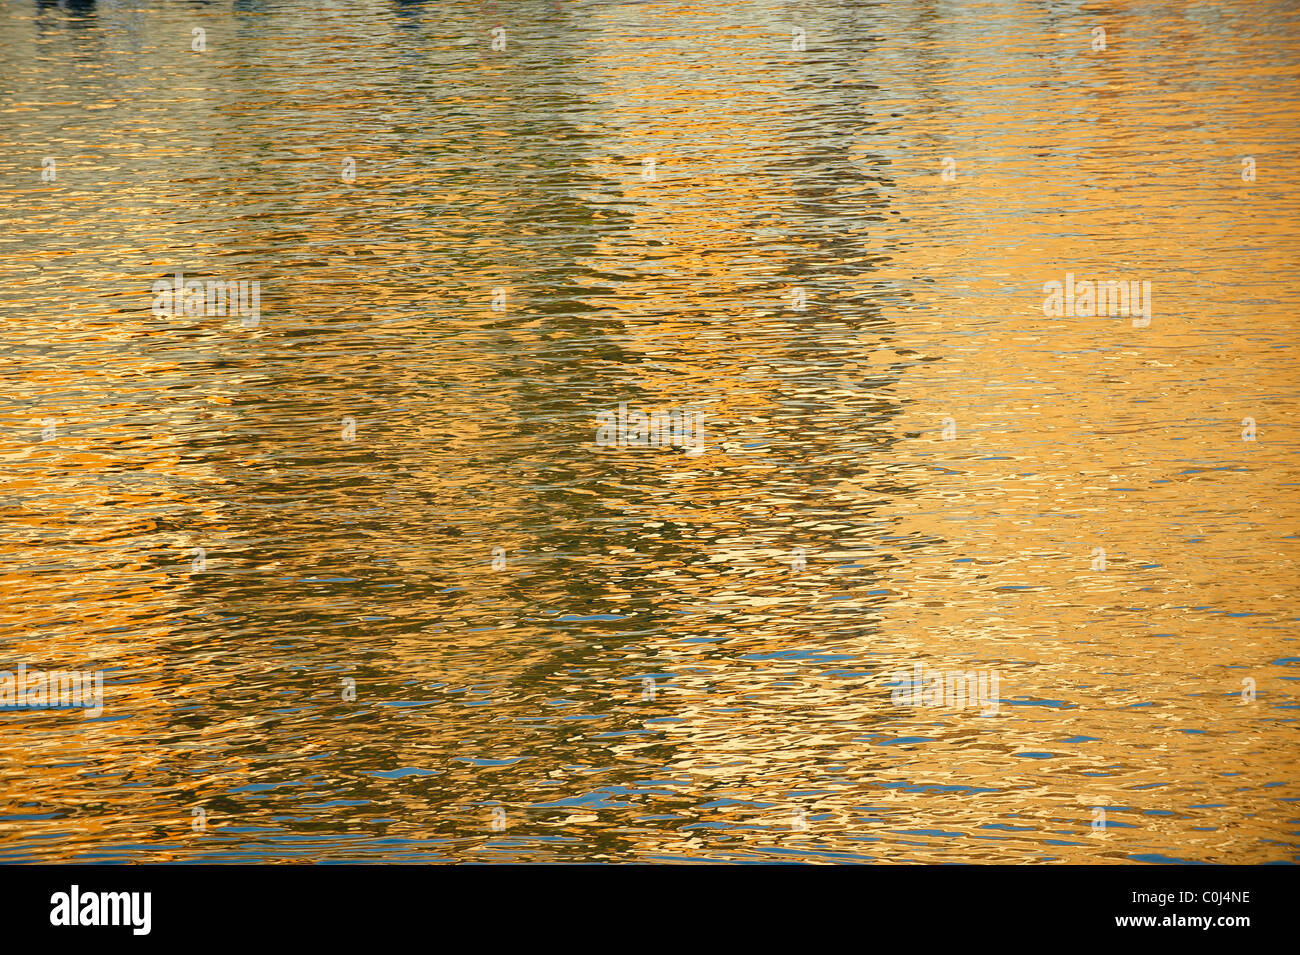 golden ripple water reflections - Stock Image